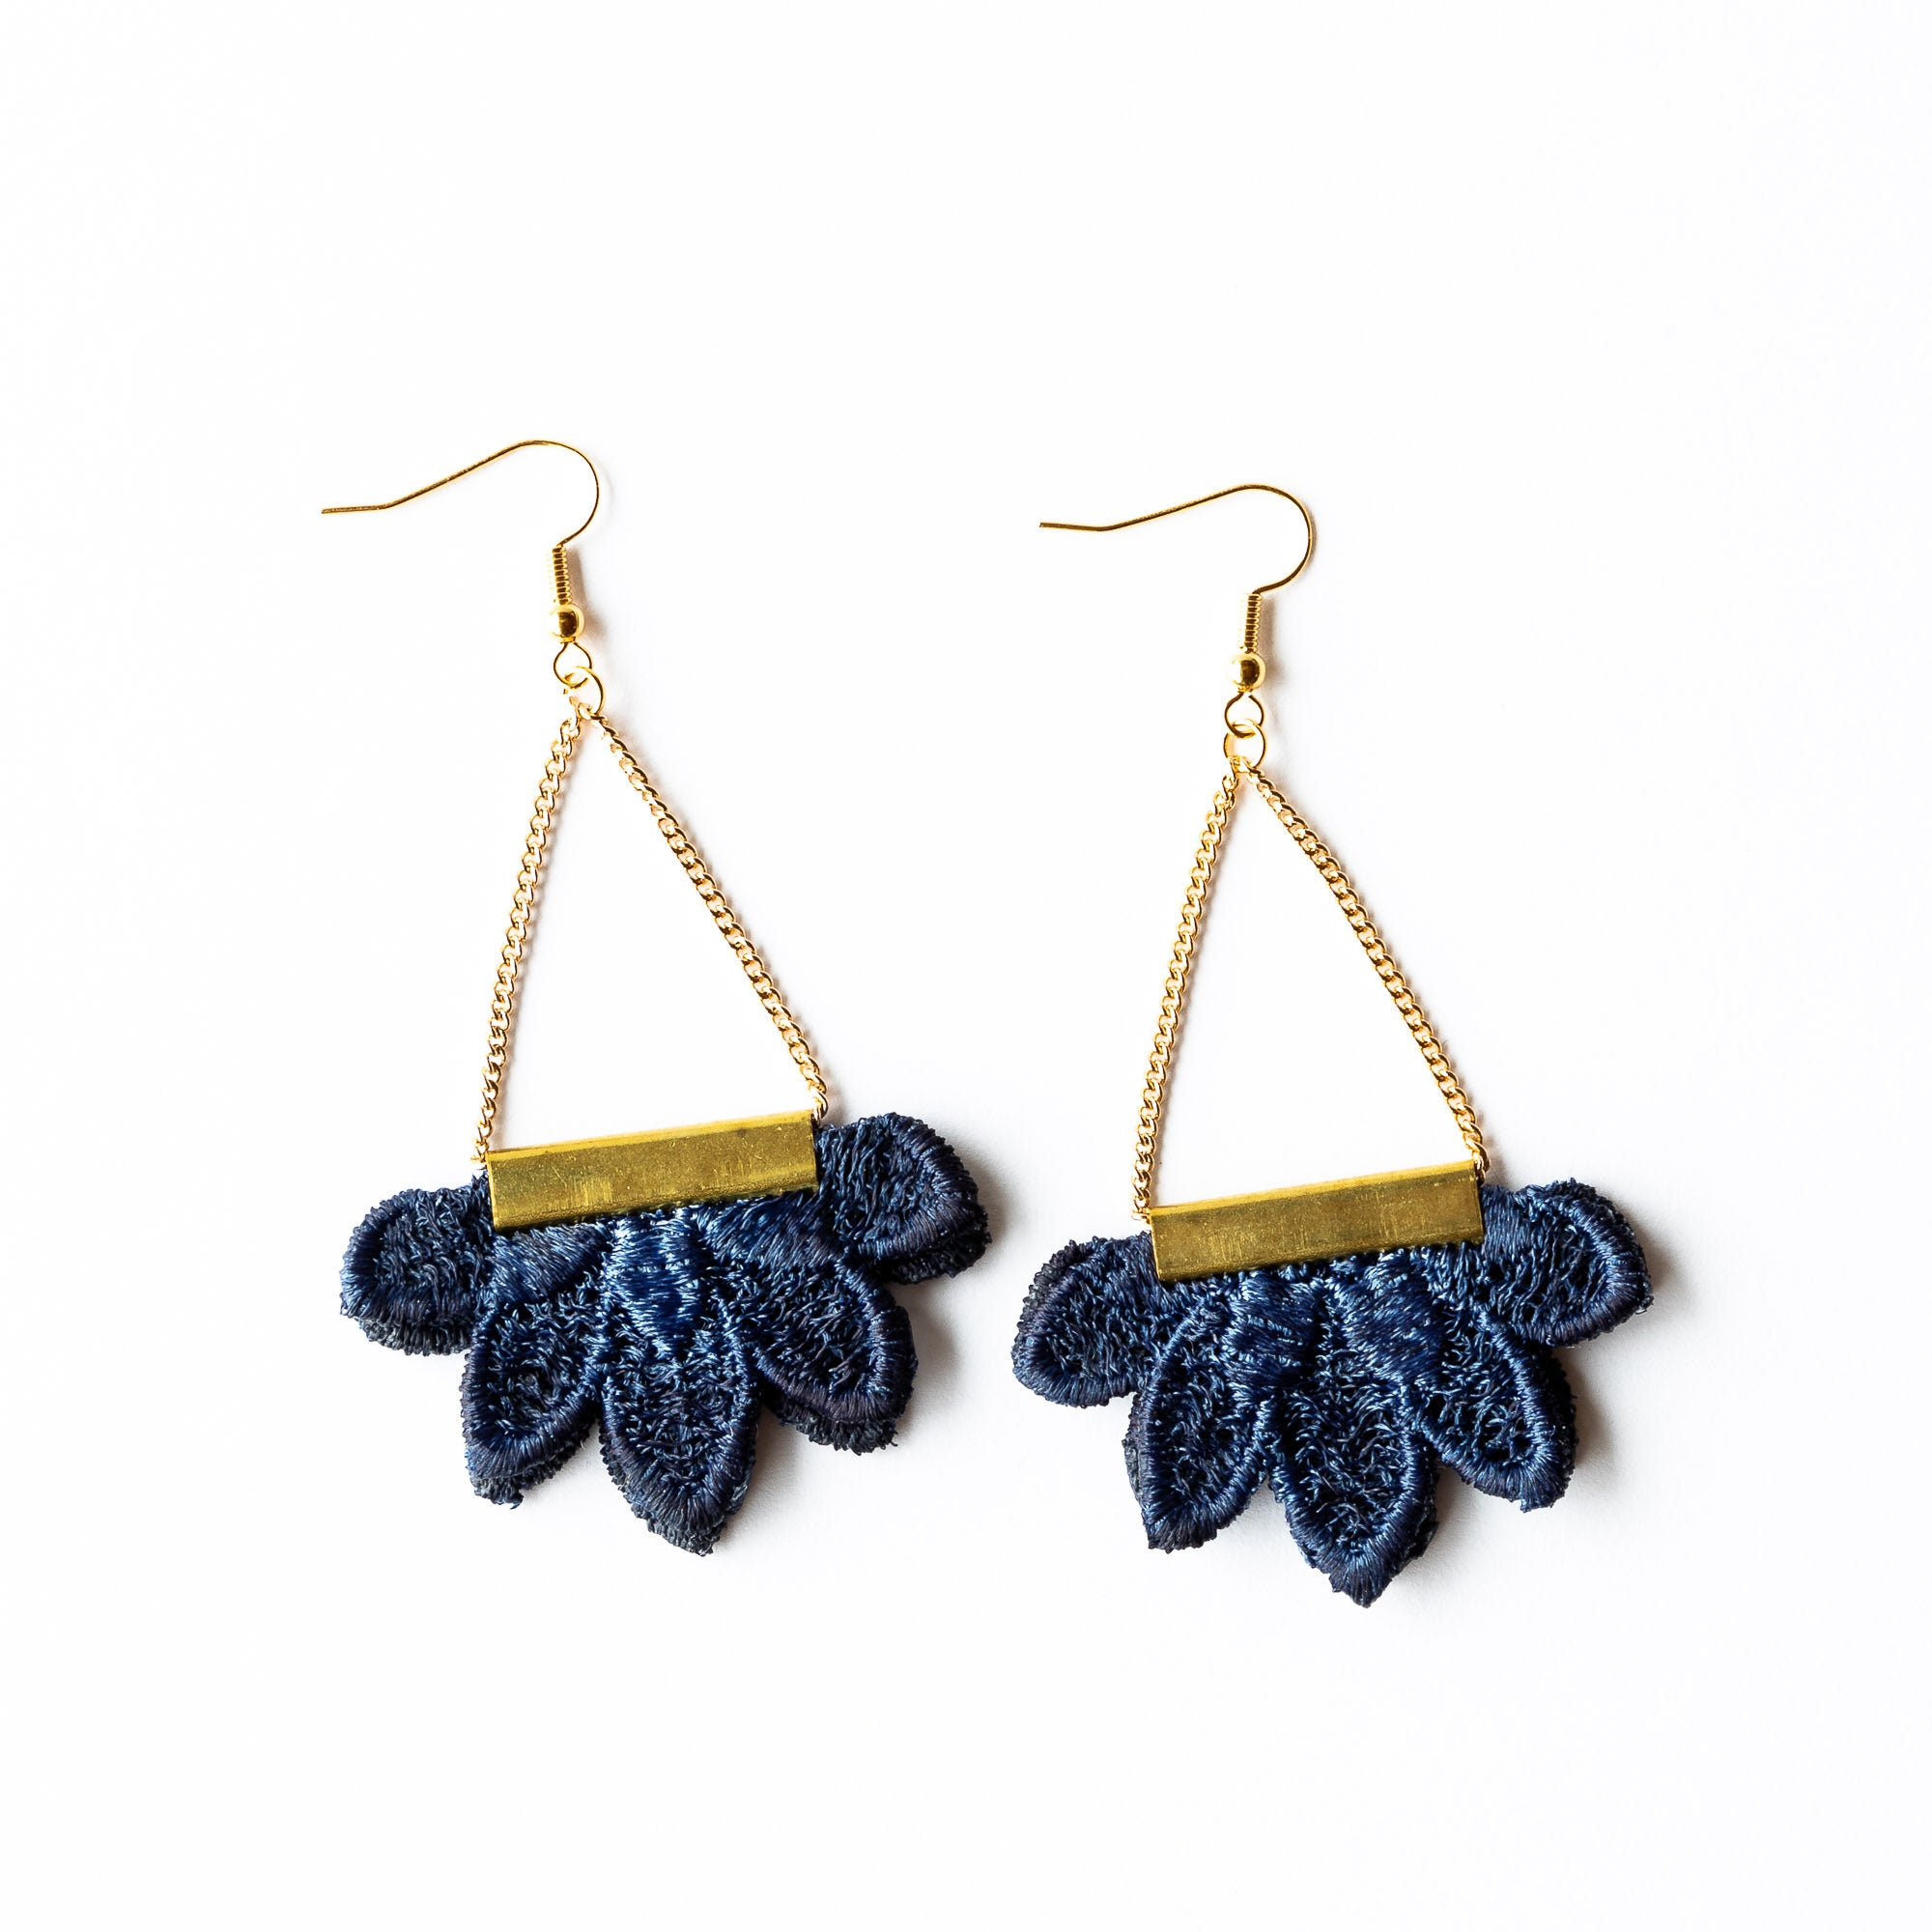 Model Wearing a Nightside - Flower Shaped Lace & Brass Earrings - Sold by Chic & Basta